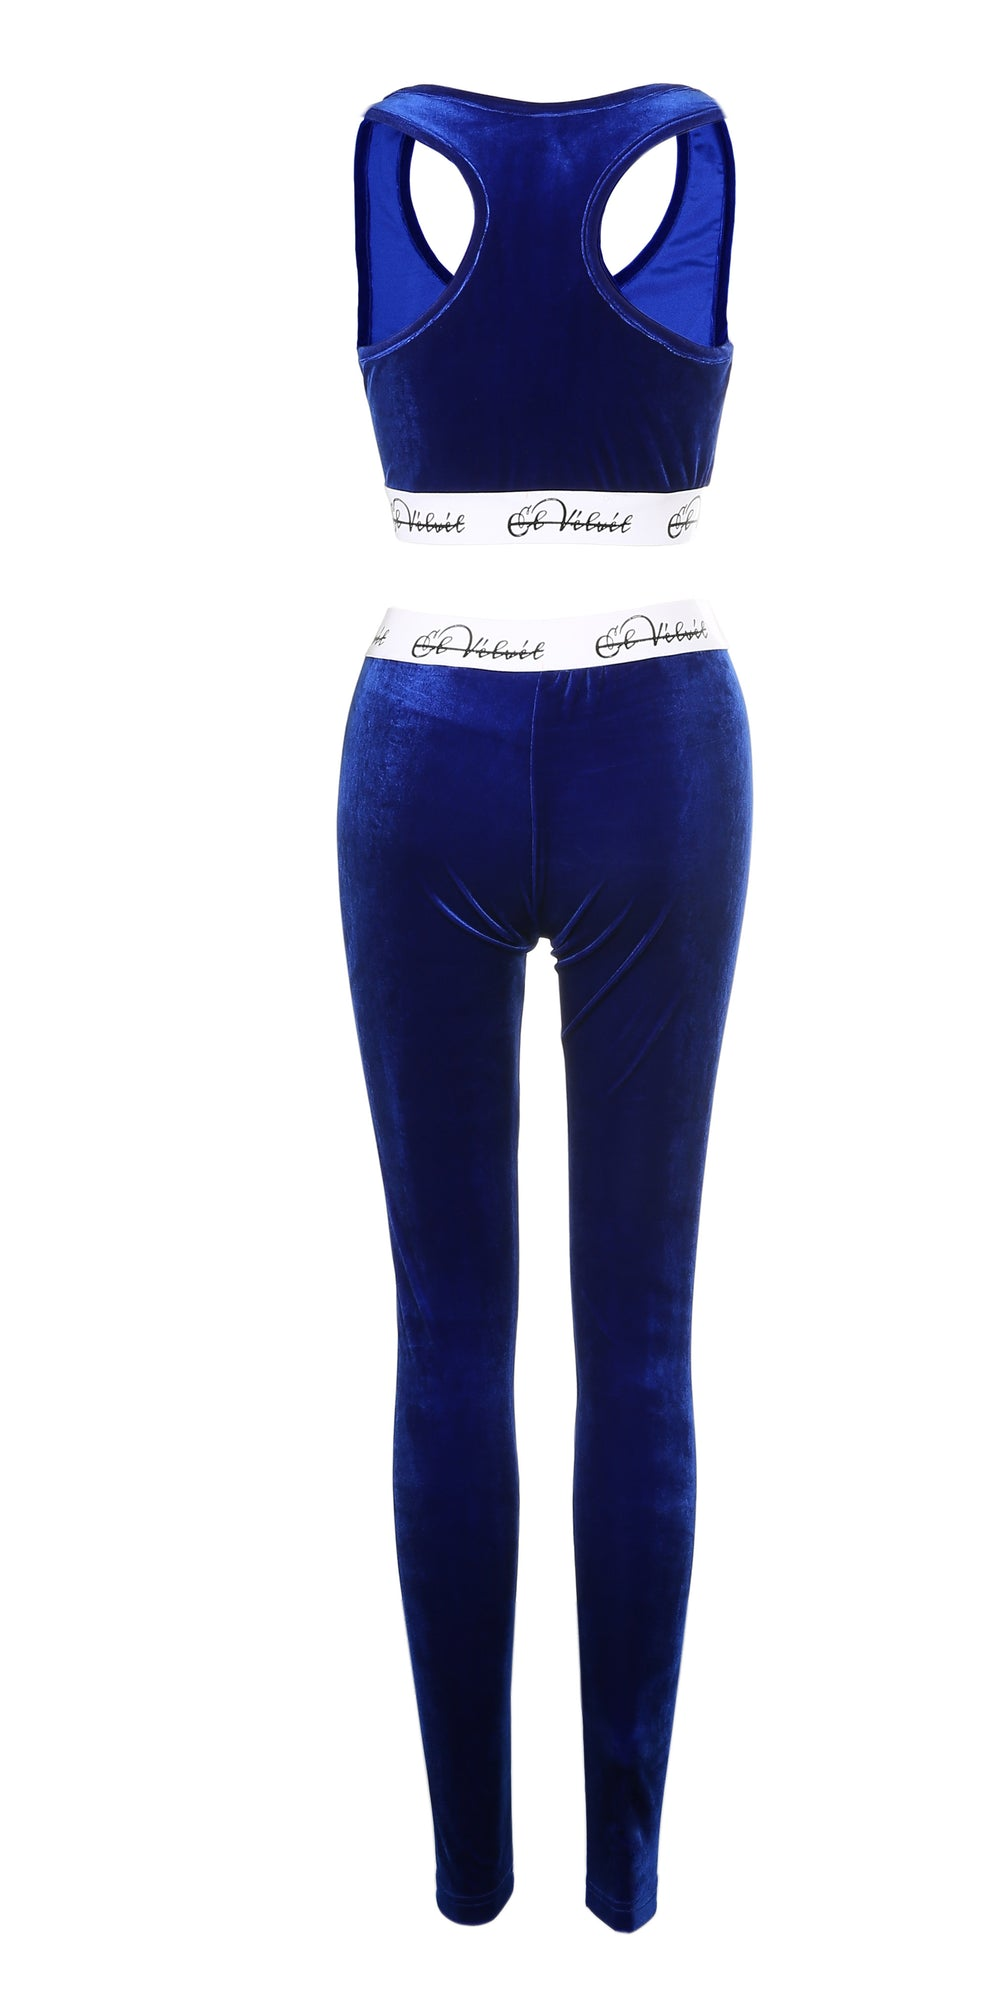 Royal Blue Velvet Taped Bralet & Pants/ Leggings Full Set